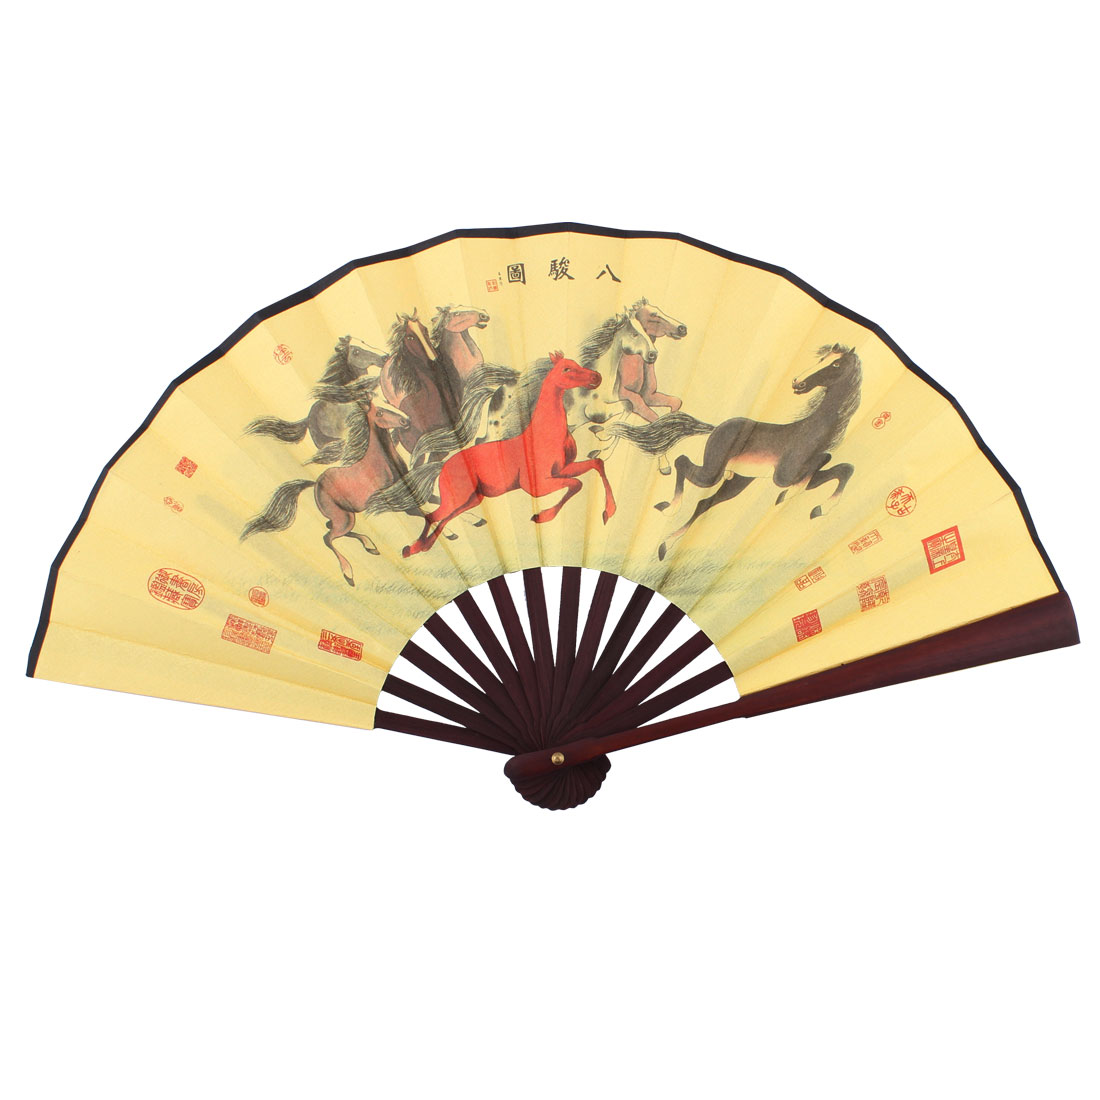 Wooden Frame Eight Horses Pattern Chinese Retro Style Folding Handheld Fan Yellow